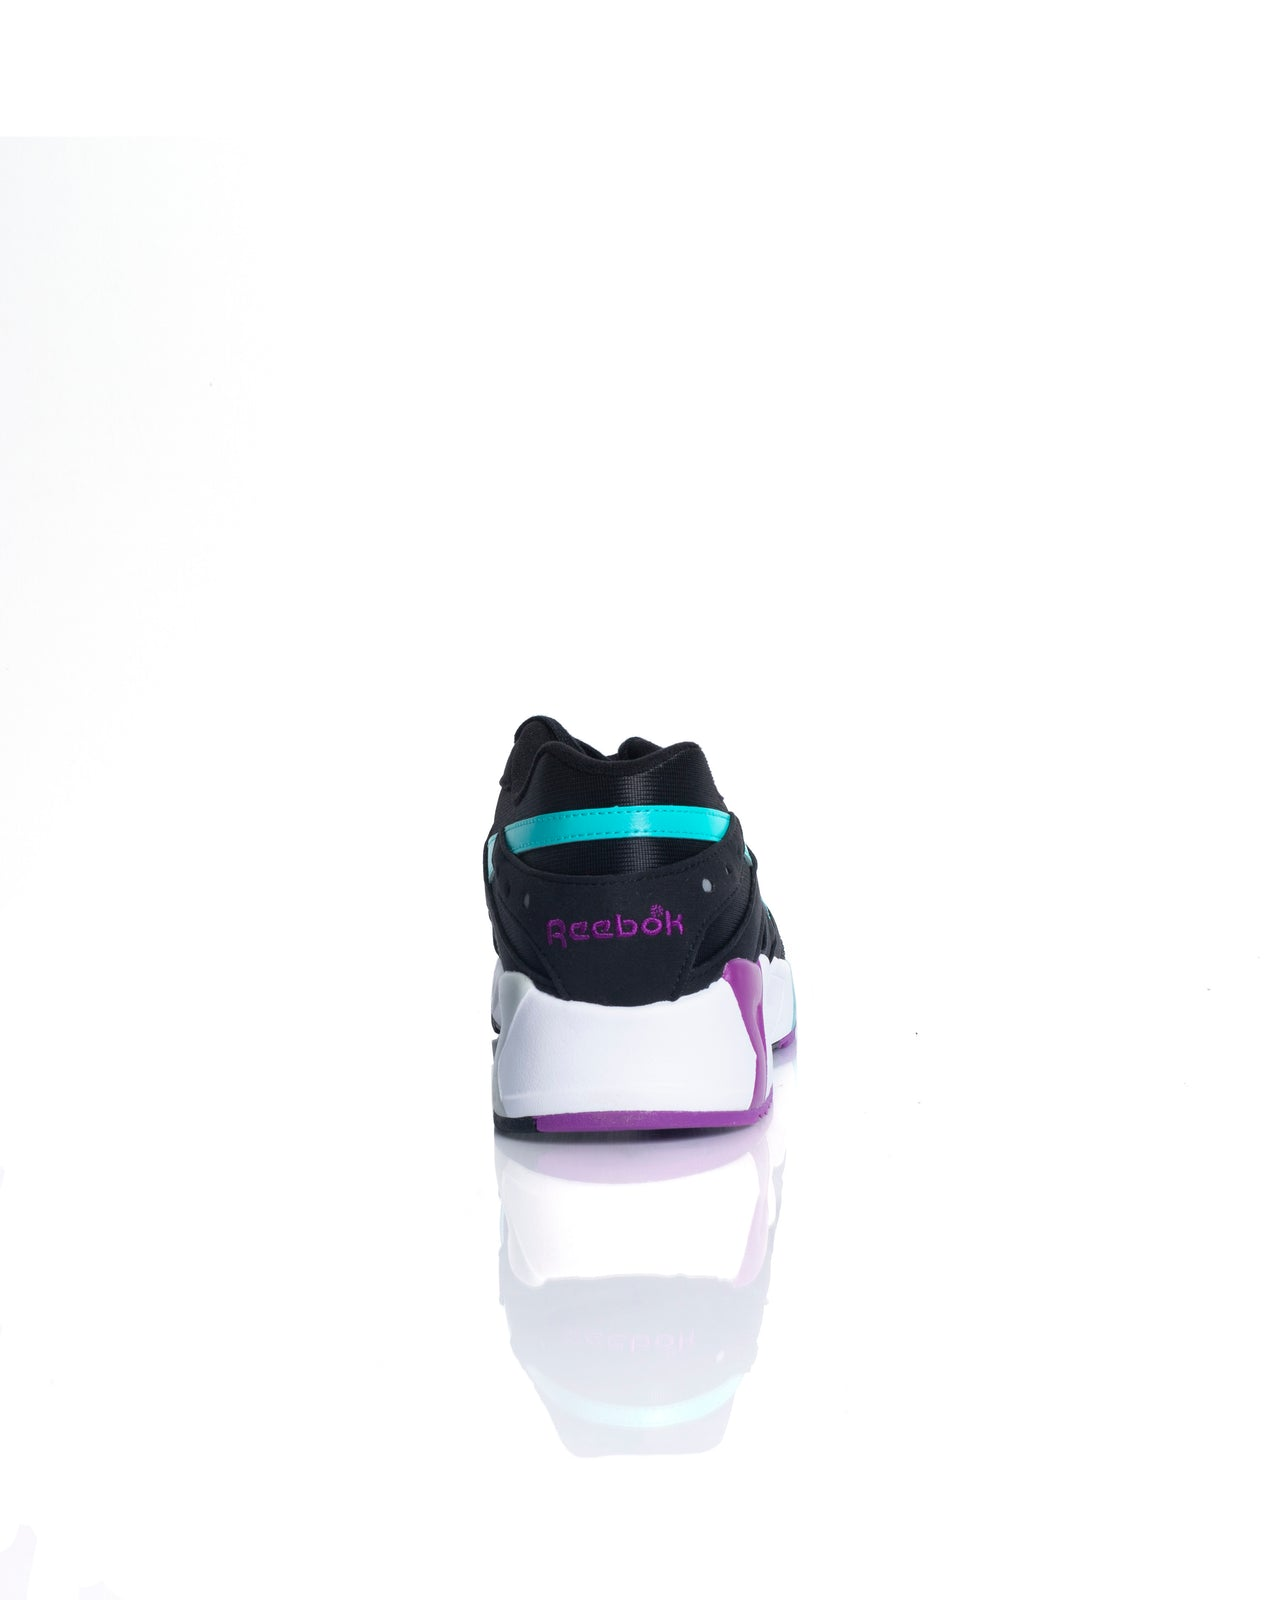 Aztrek - Color: Black/Teal/Aubergine | Black